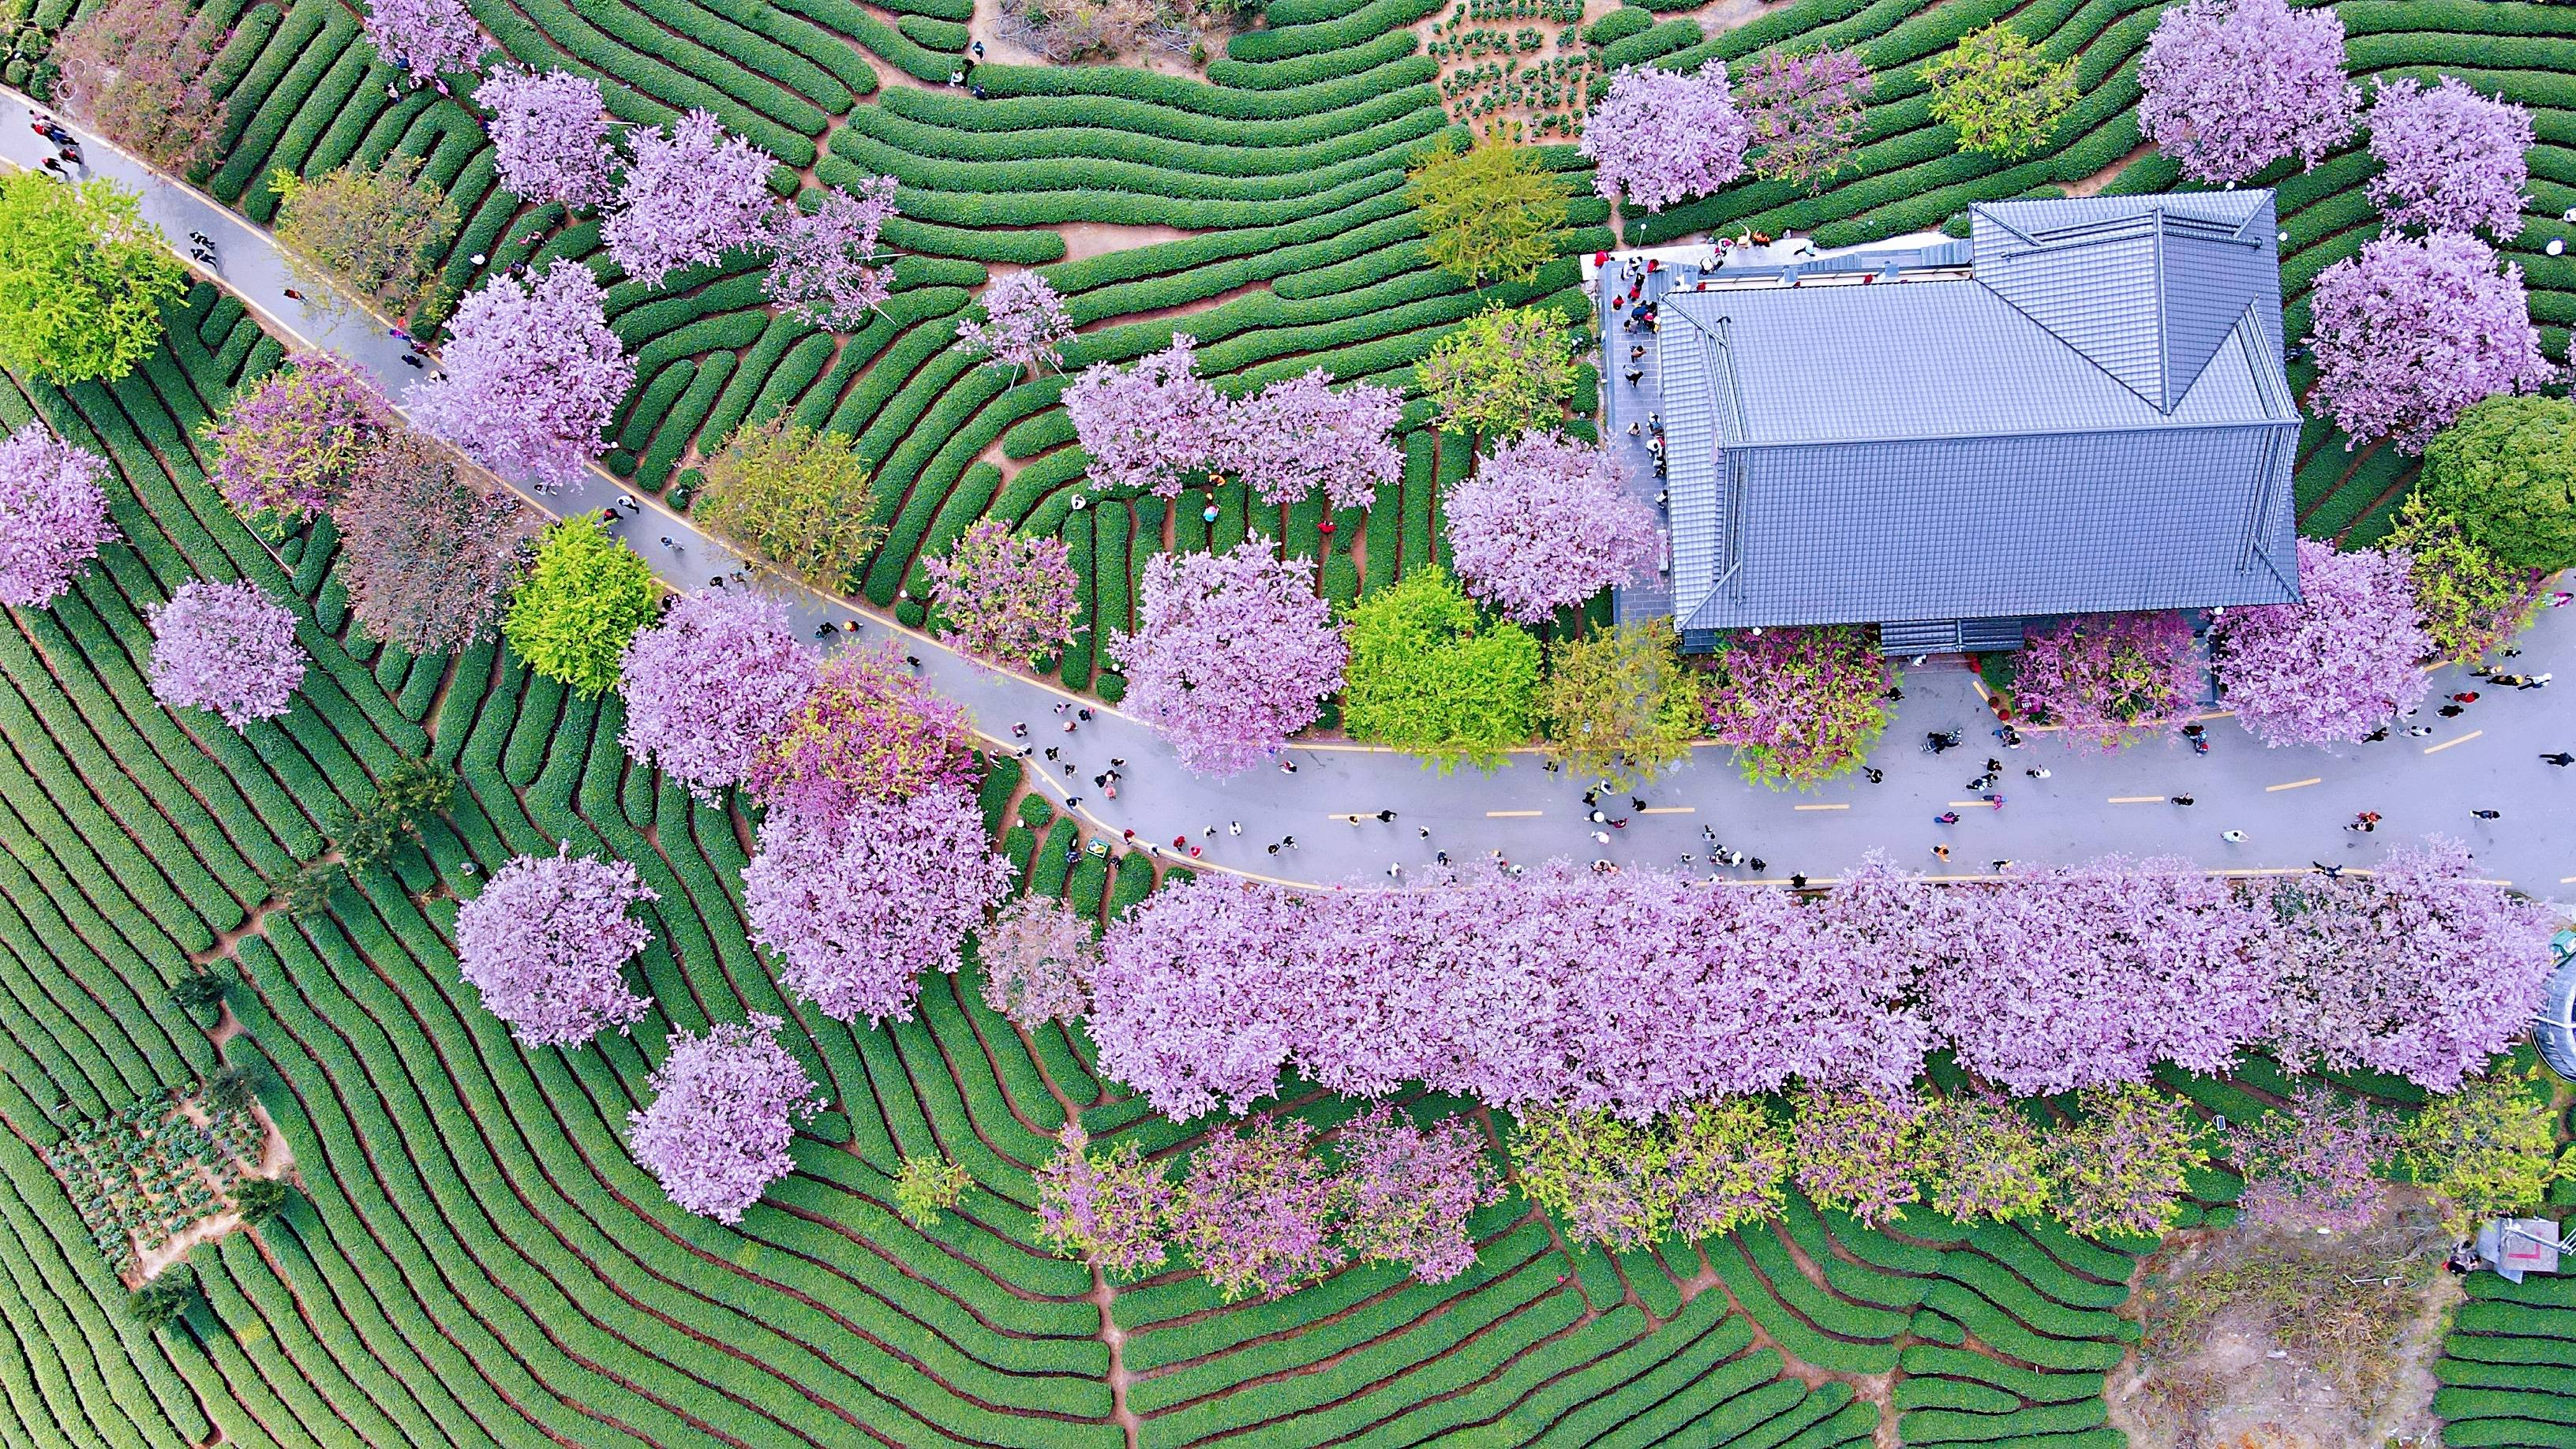 901ca752211f452187a4b45cff826c93 - A guide to viewing cherry blossoms in Fujian, China's most beautiful cherry blossom sacred land, Alishan on the mainland_台品- Sohu